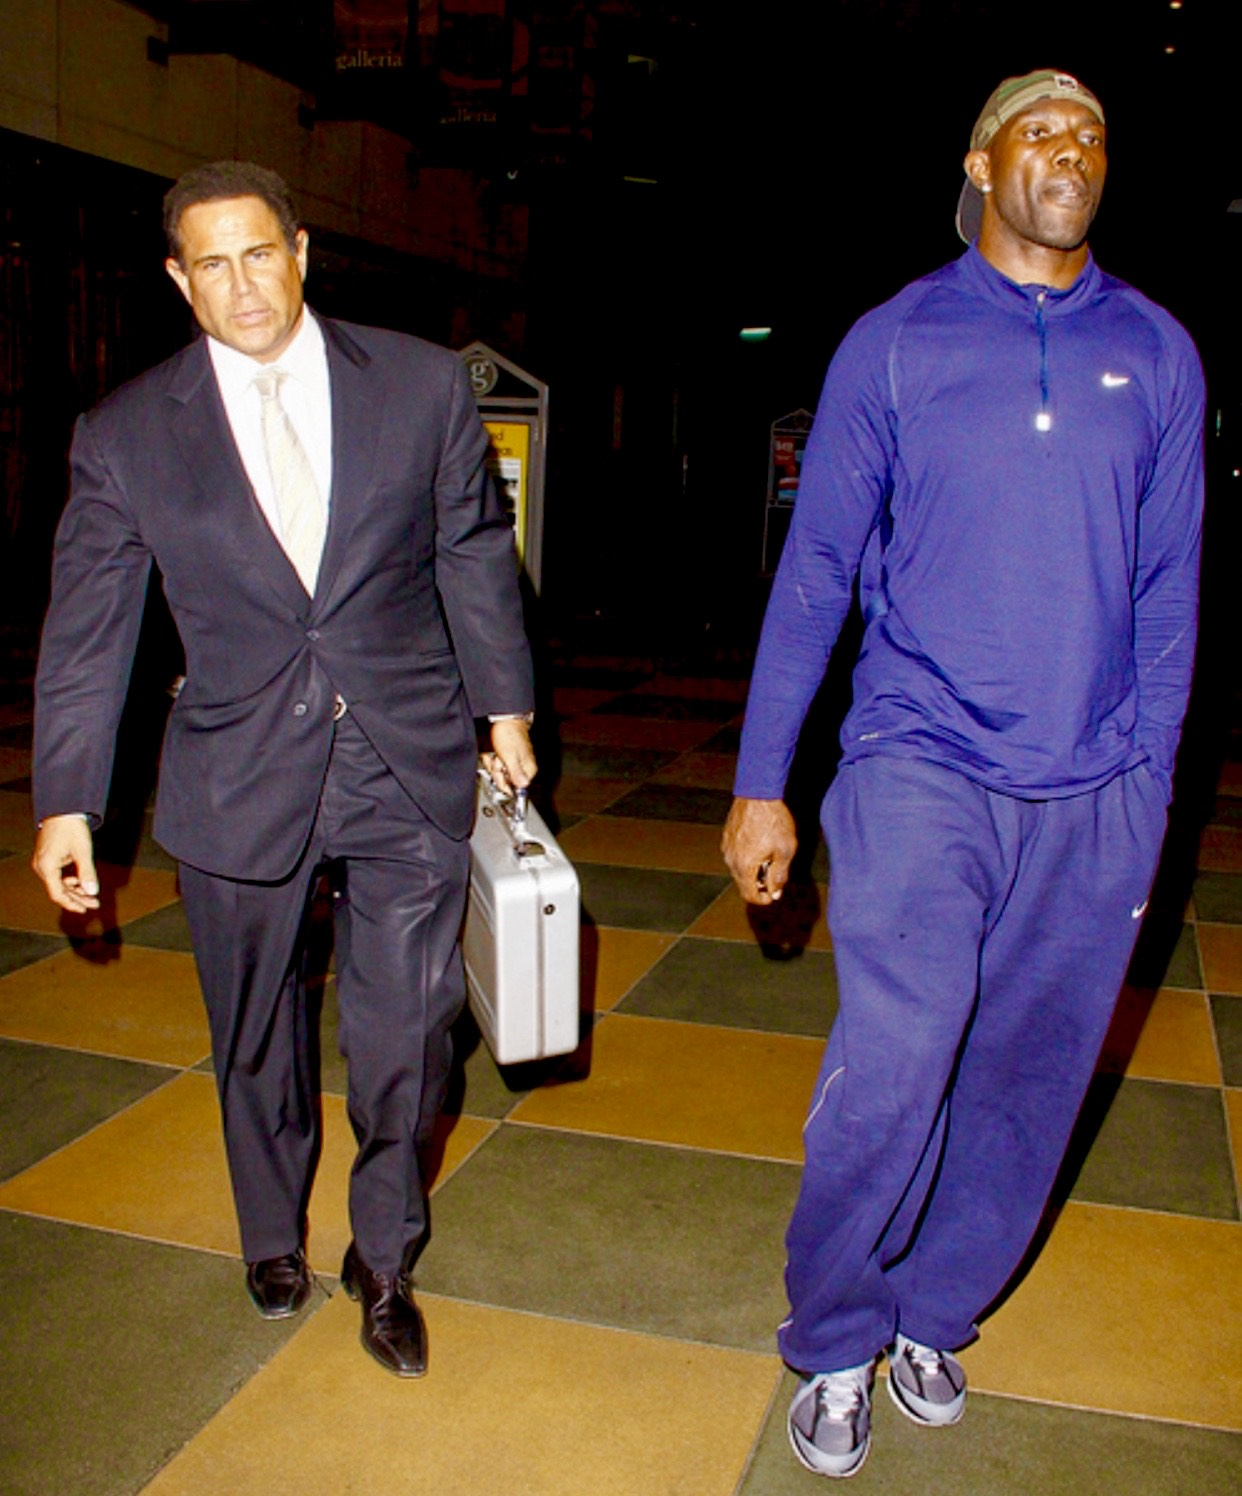 Terrell Owens, Terrell Owens Cowboys, Terrell Owens 49ers, Terrell Owens Eagles, Terrell Owens Seahawks, NFL, NBA, MLB, Boxing, Racing, NASCAR, NFL Champion Terrell Owens, Keith Middlebrook, Keith Middlebrook Super Entrepreneur Icon, keith Middlebrook Real Iron Man, Keith Middlebrook Bodybuilder, Keith Middlebrook Bodybuilding, Keith Middlebrook Middlebrook Foundation, Charity for Kids, YouTube.com Keith Middlebrook, Keith Middlebrook Twitter @1KMiddlebrook, Keith Middlebrook Instagram @KeithMiddlebrook1, Success Wealth Prosperity, Keith Middlebrook Marvel, Natural Organic, Keith Middlebrook Nutrition, Keith Middlebrook Gym talk, Keith Middlebrook Ballers, IMDB.com Keith Middlebrook, Keith Middlebrook Muscle, God, Goals, Gym, Gratitude, Giving, Keith Middlebrook real Estate, Keith Middlebrook Xccelerated Success, Keith Middlebrook Training, Training, Natural, Organic, Keith Middlebrook Fans, Keith Middlebrook Followers, Keith Middlebrook Brand, Keith Middlebrook Success, Keith Middlebrook Winning, Keith Middlebrook Fans & Followers, Keith Mieddlebrook Success, Keith Middlebrook Foundation, Keith Middlebrook Charities, The Rock vs The Real Iron Man, StJude, Waounded Warrior Project, Habitat for Humanity,